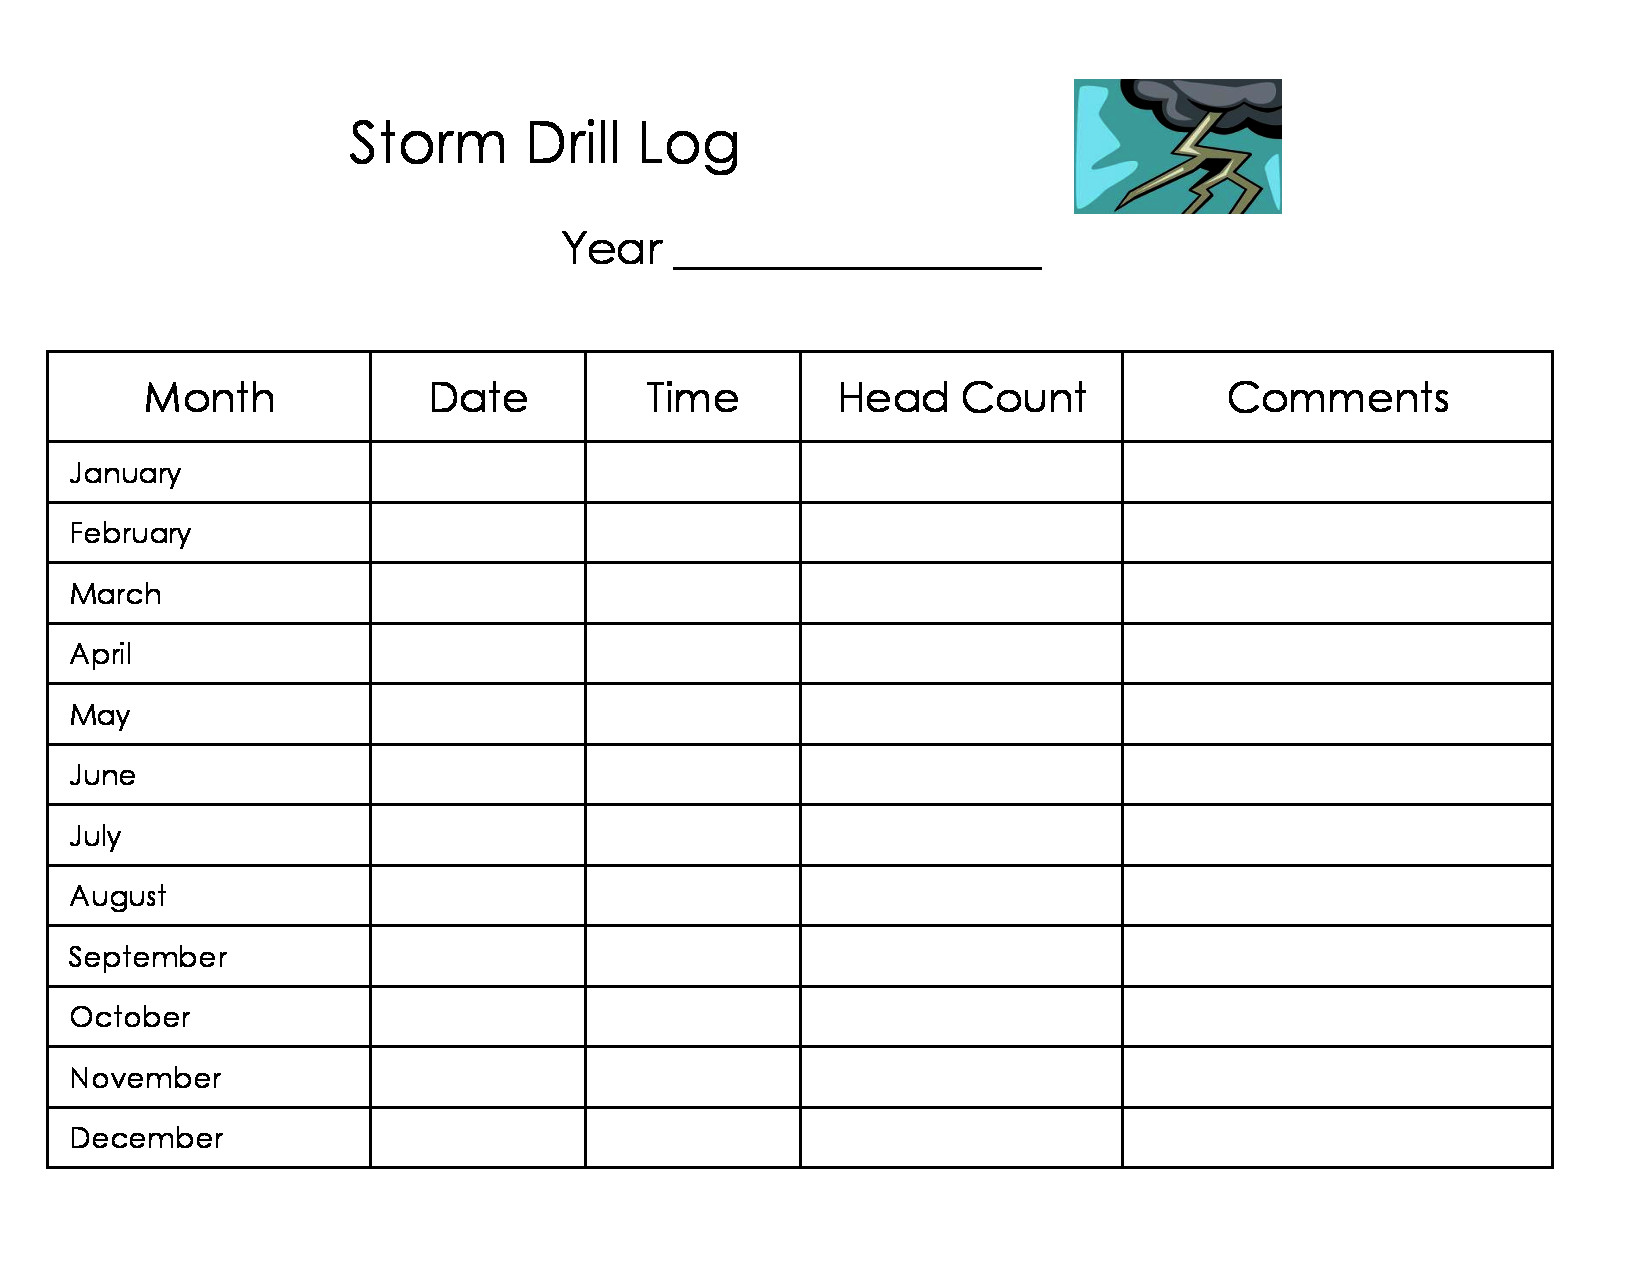 Daycare Storm Drill Log Form